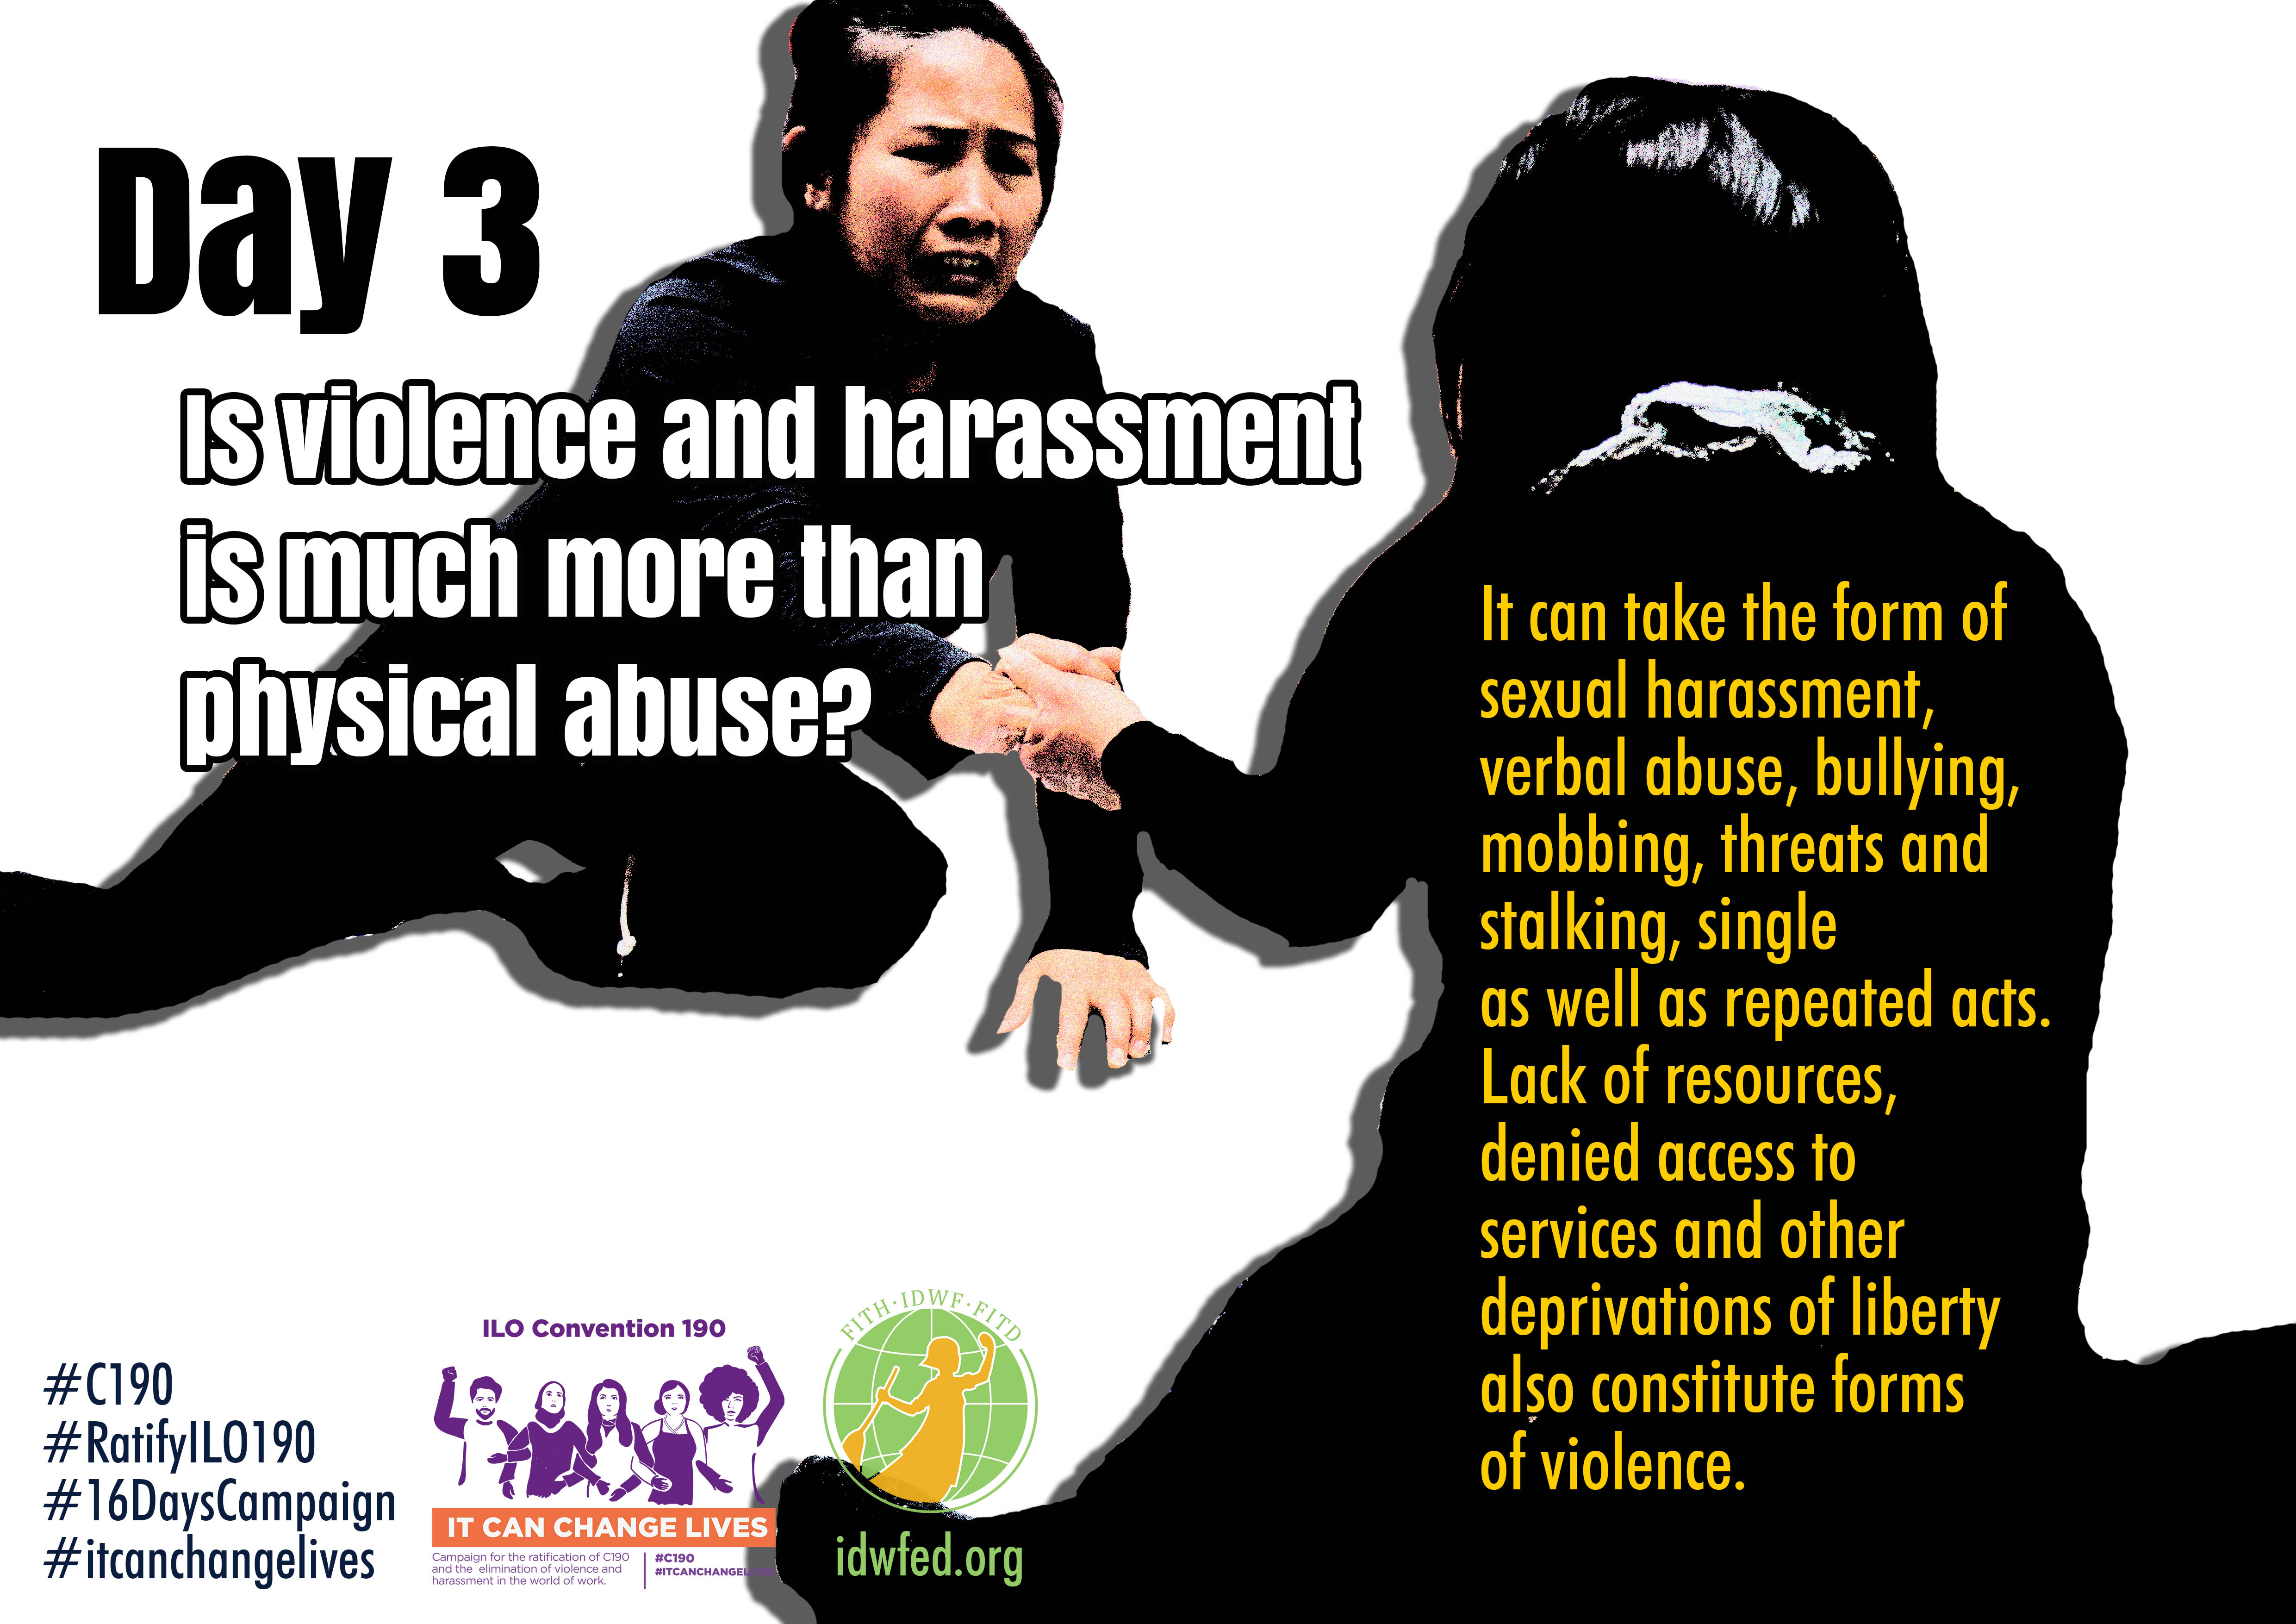 3. Is violence and harassment is much more than physical abuse?